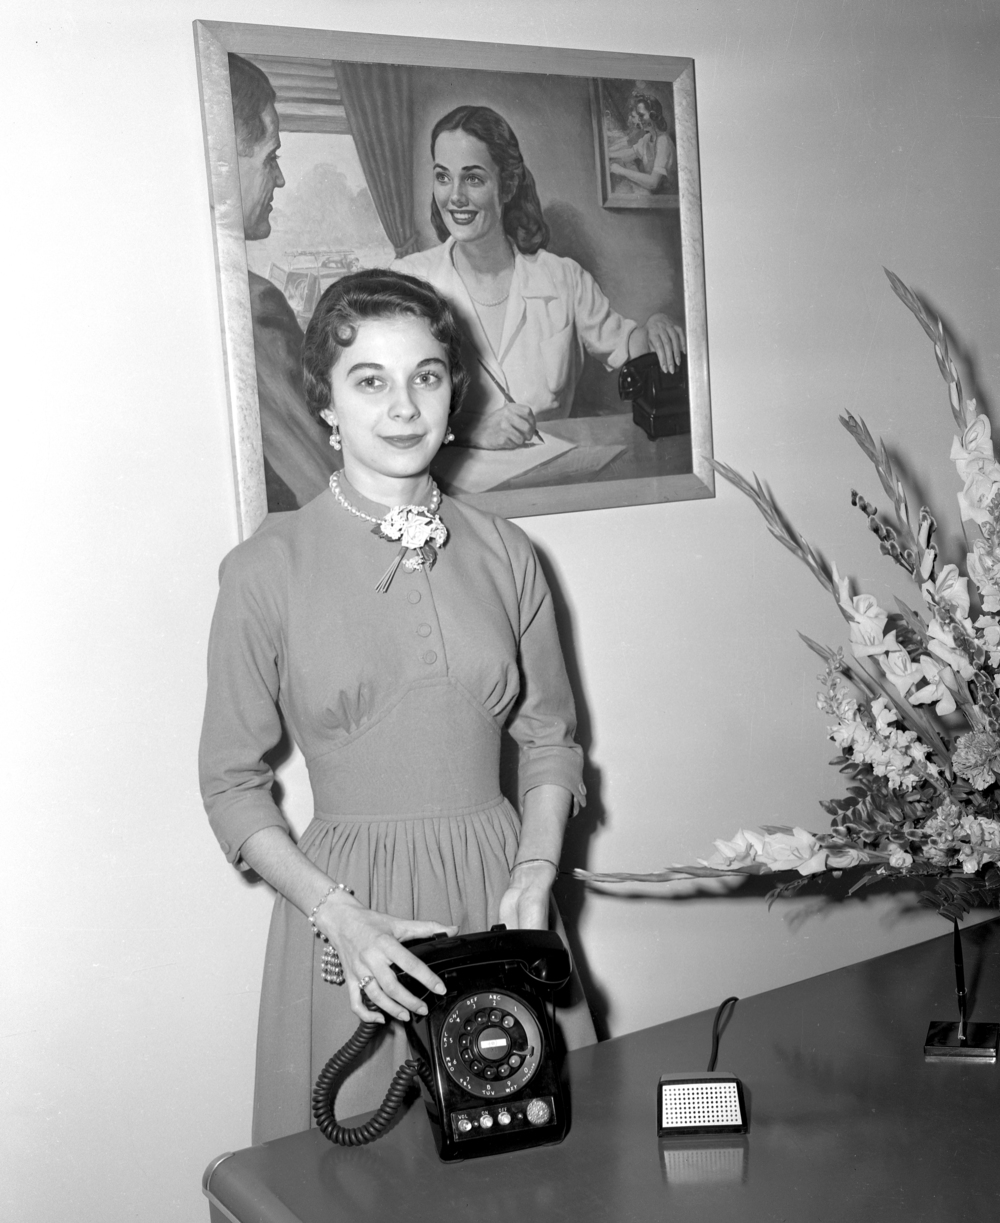 women with dial telephone; March 11, 1955